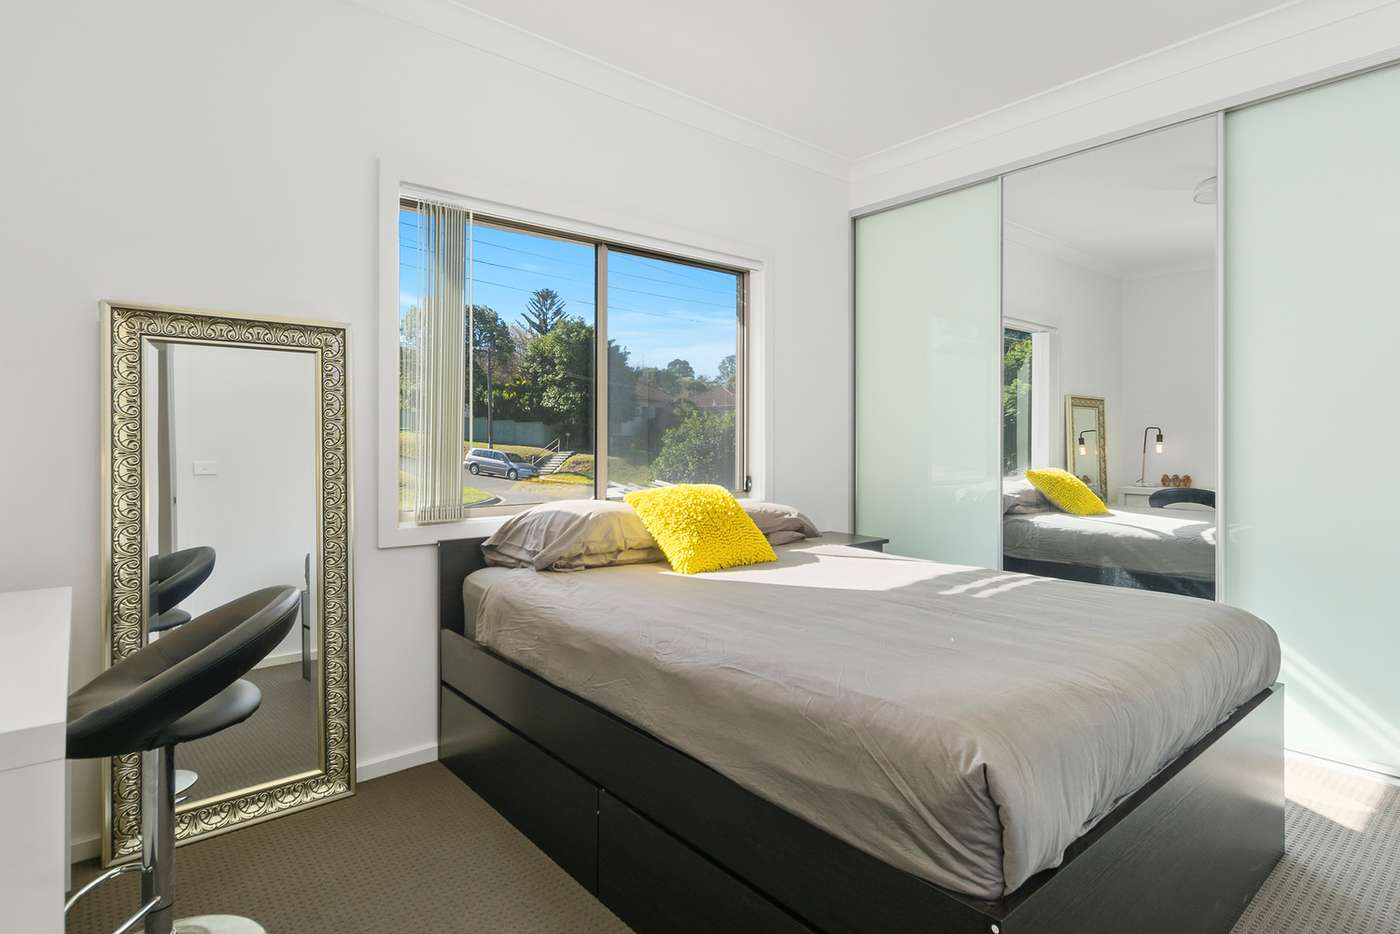 Fifth view of Homely townhouse listing, 1/151 Gladstone Avenue, Mount Saint Thomas NSW 2500